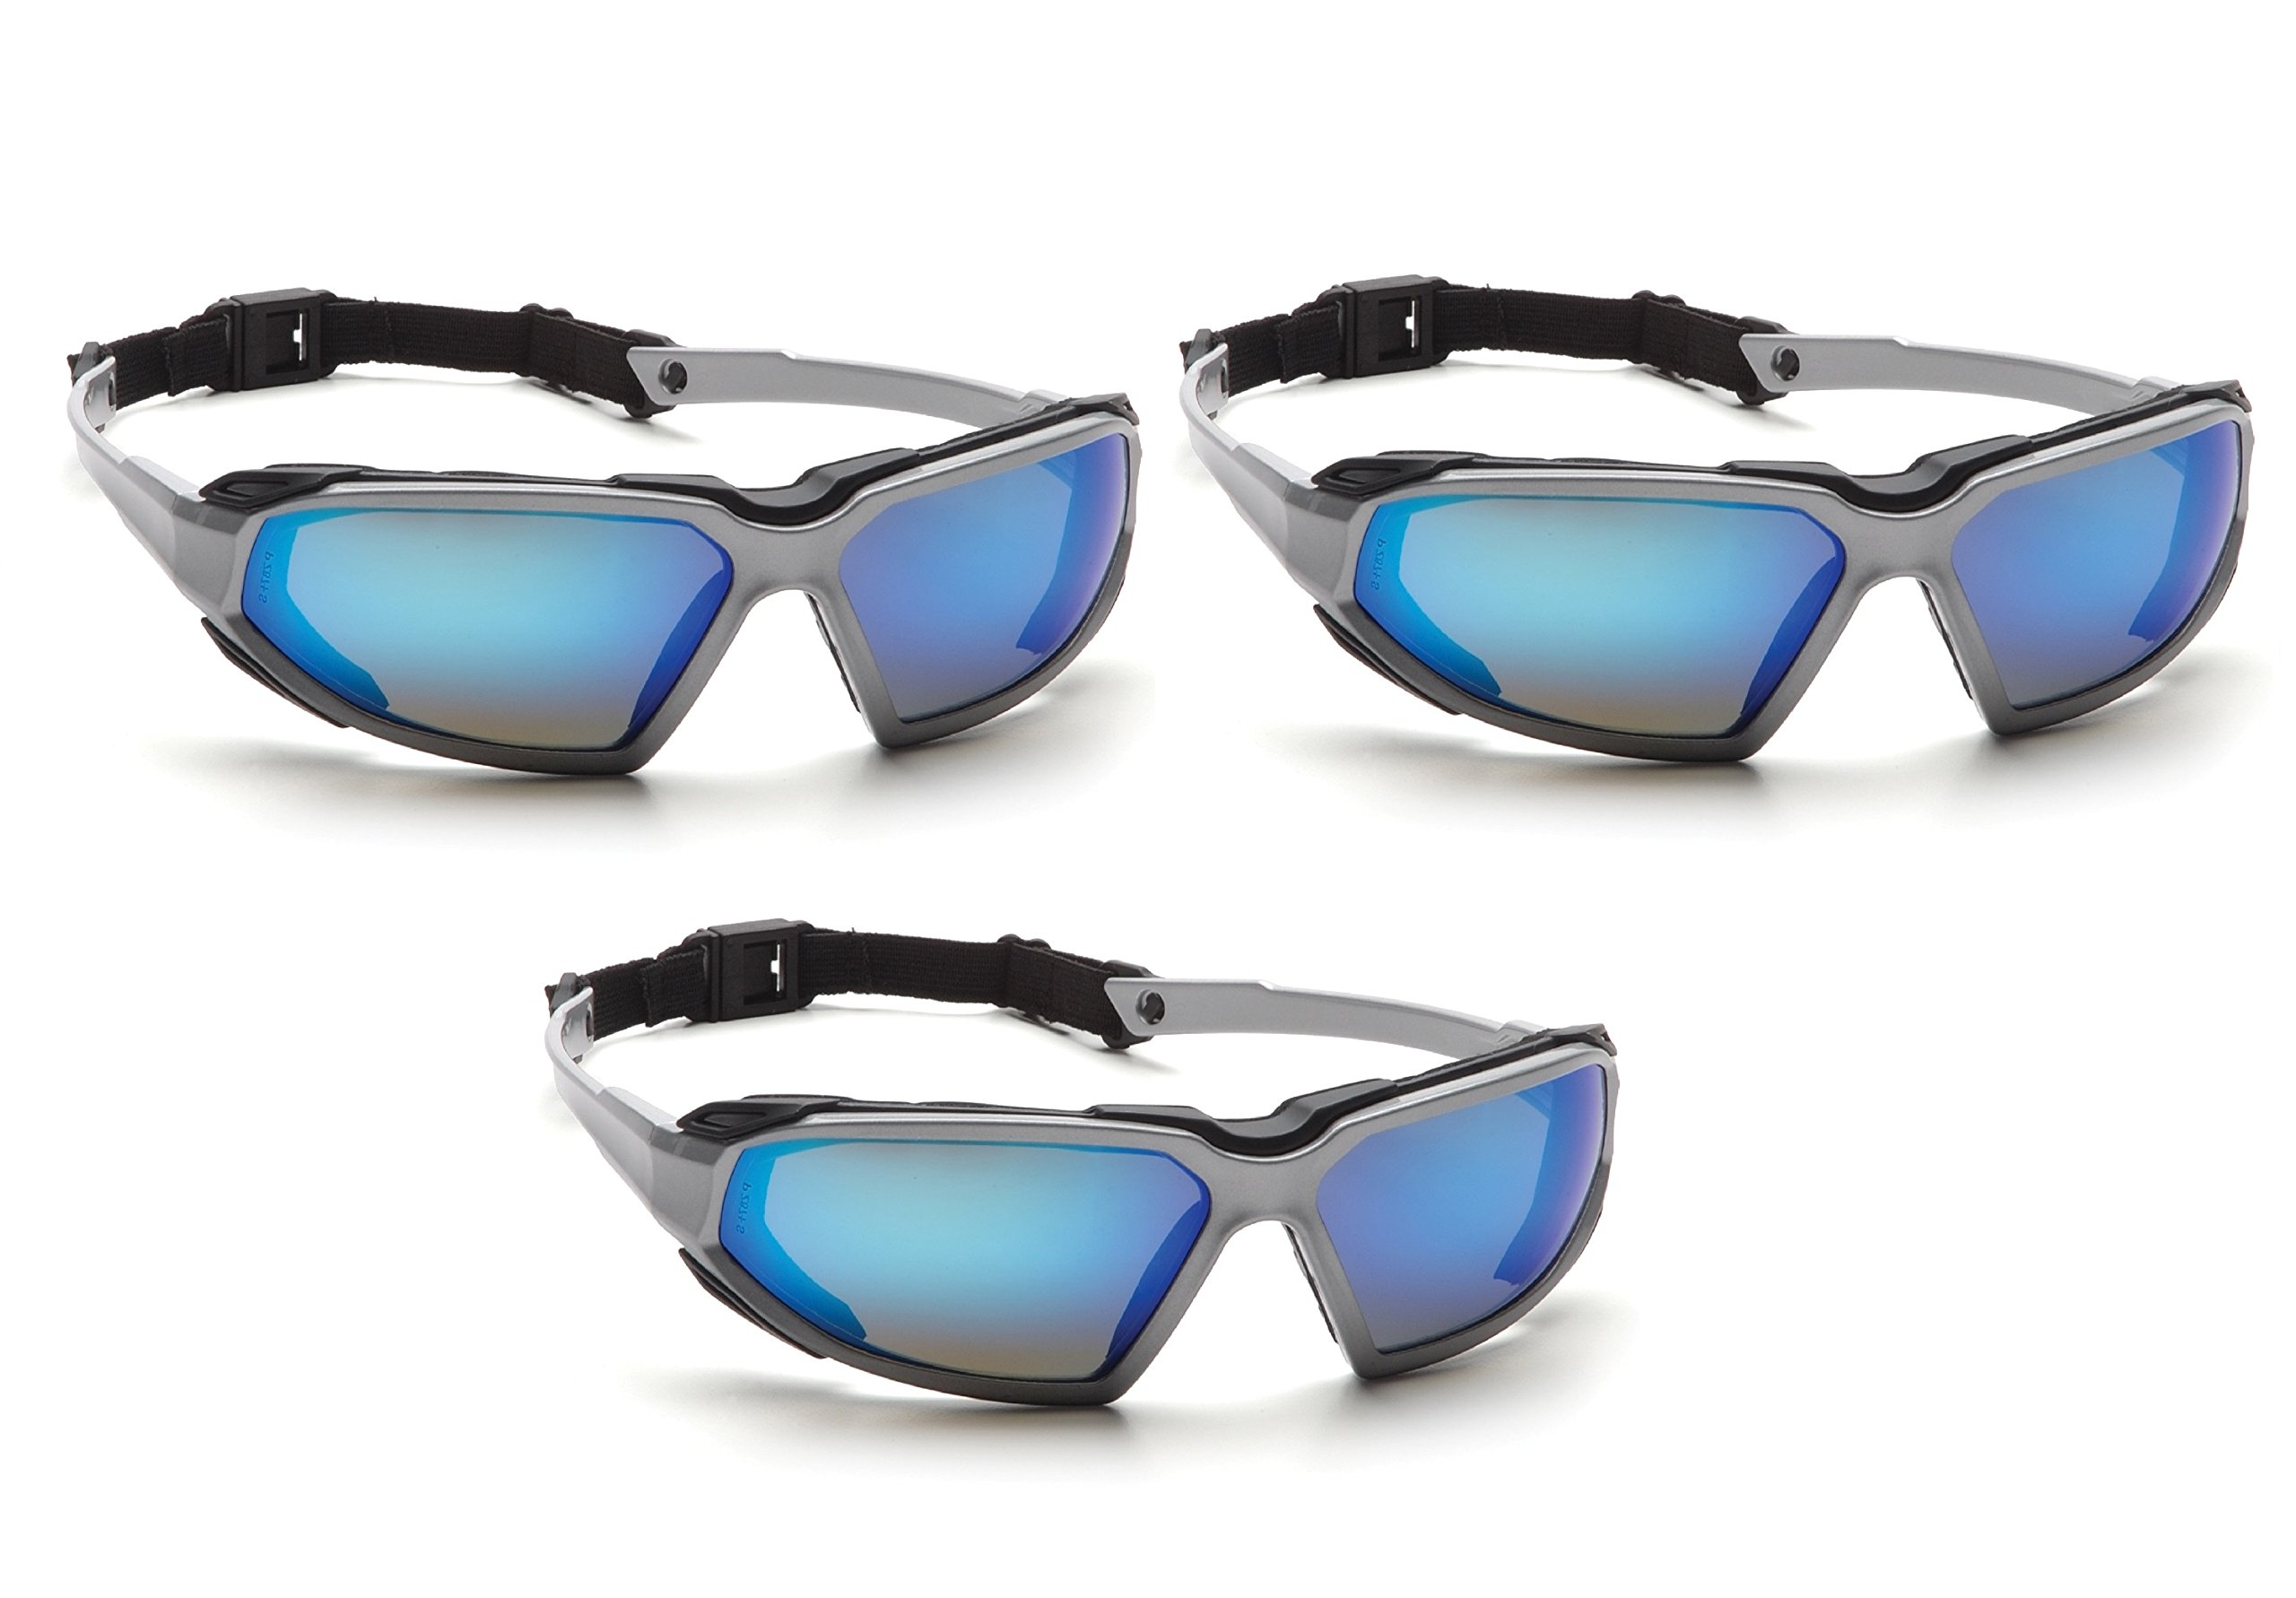 Highlander Pyramex Safety Eyewear (Silver-Black Frame/Ice Blue Mirror Anti-Fog Lens) (3) by Highlander